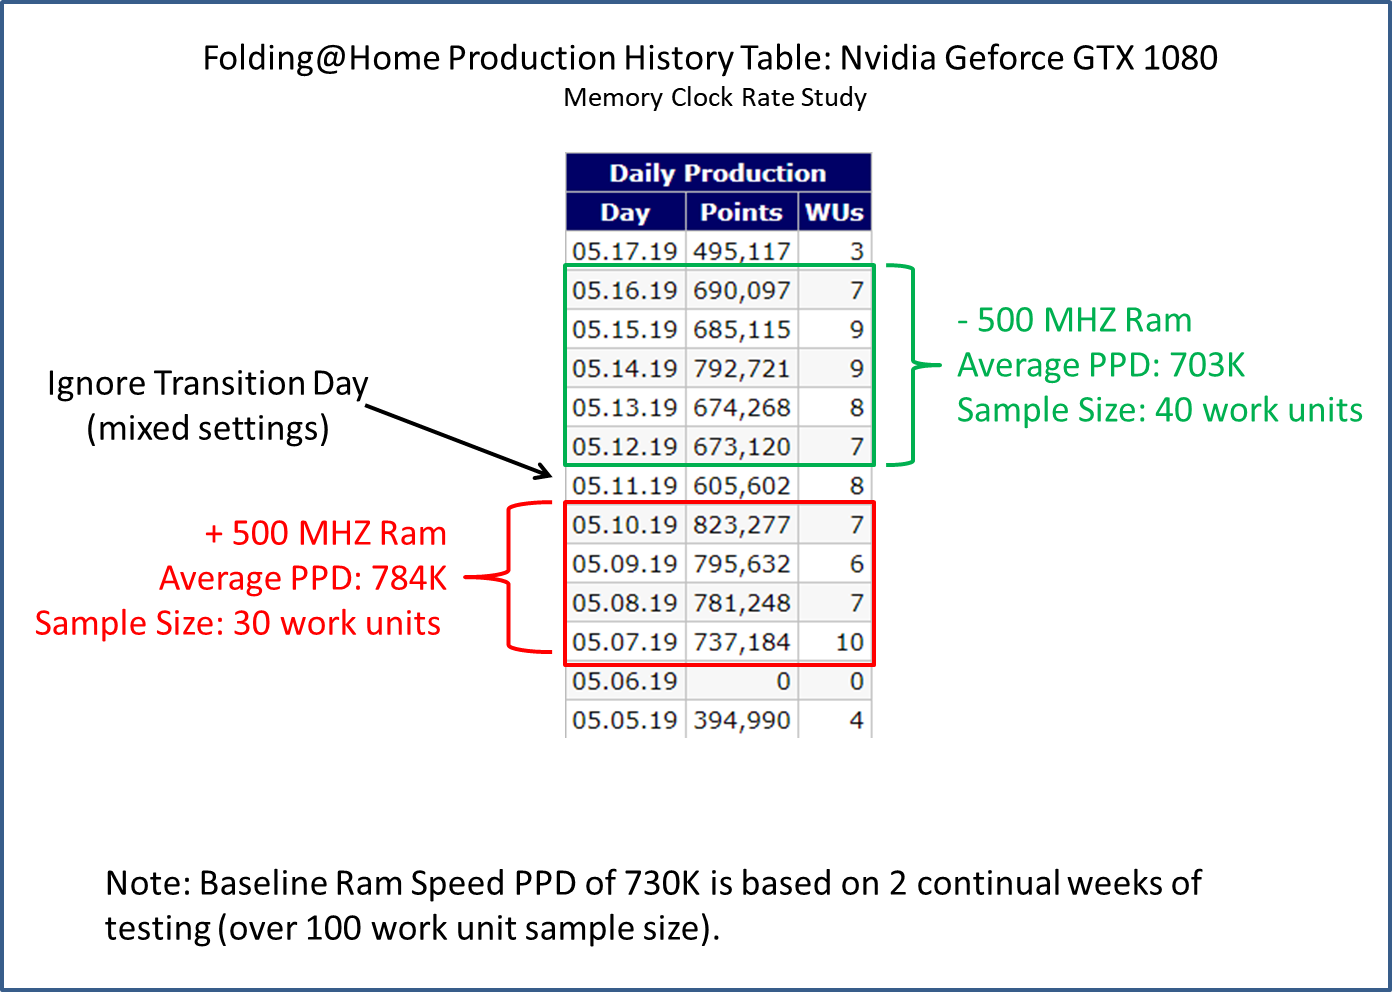 Geforce 1080 PPD Production - Ram Study